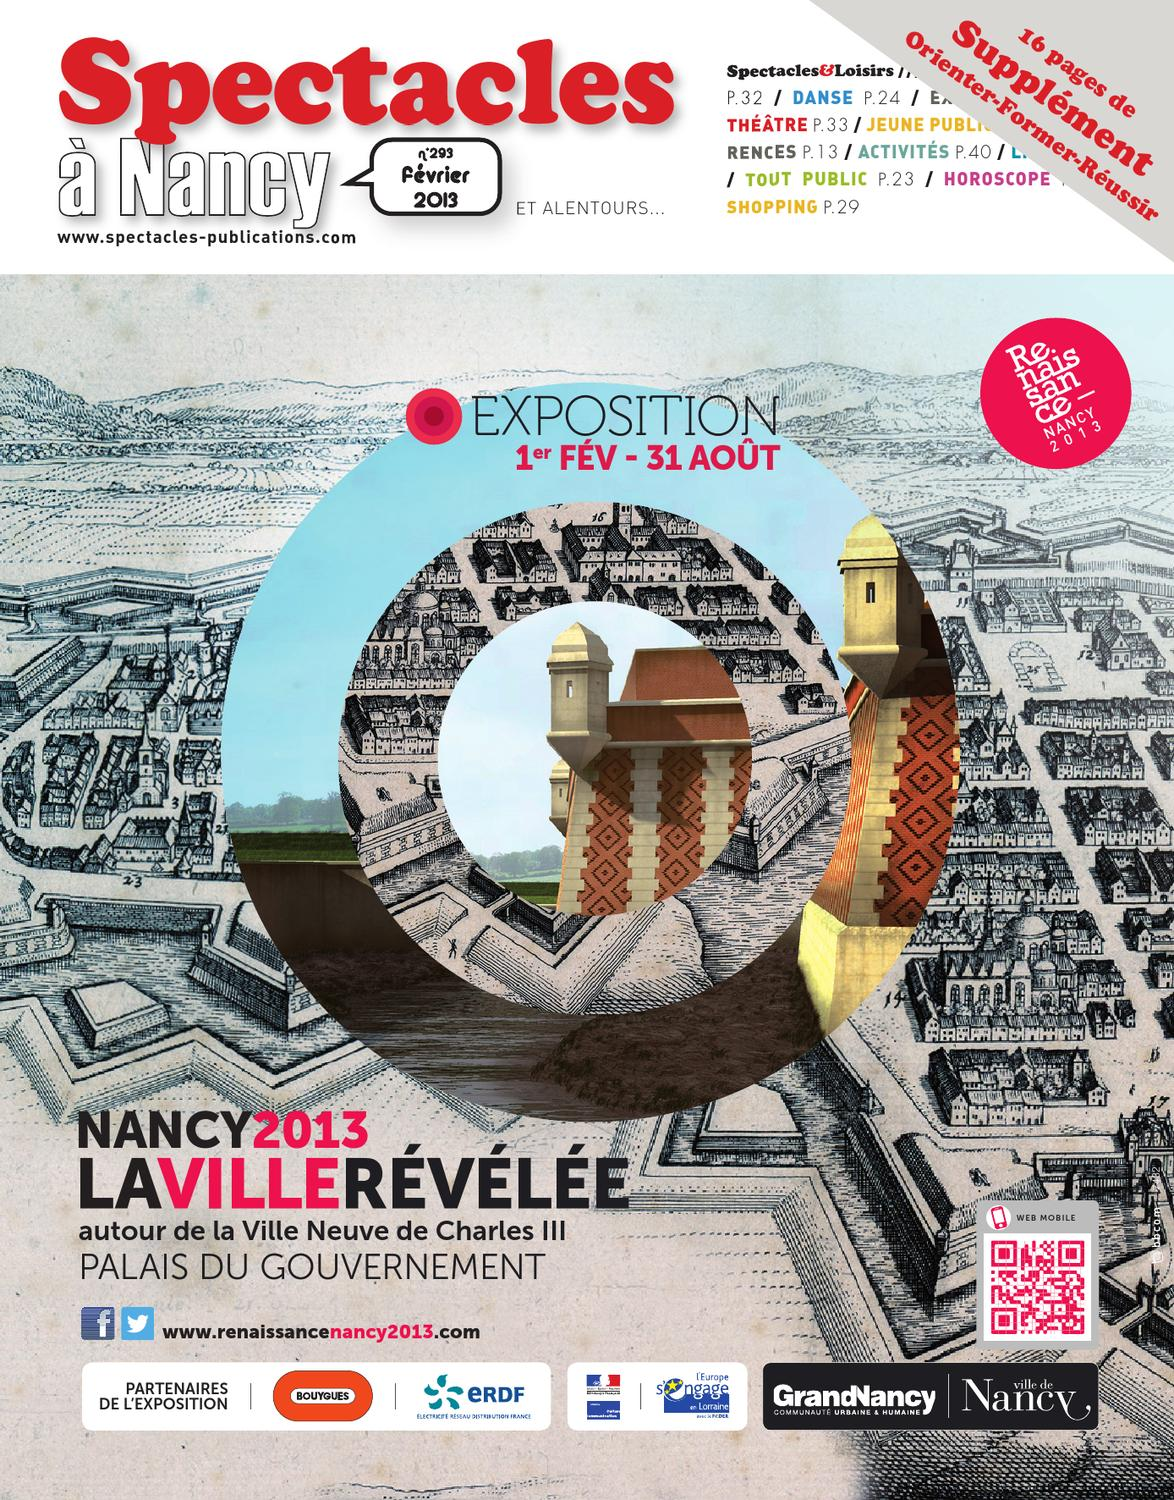 Spectacles publications metz n°277 / février 2016 by spectacles ...